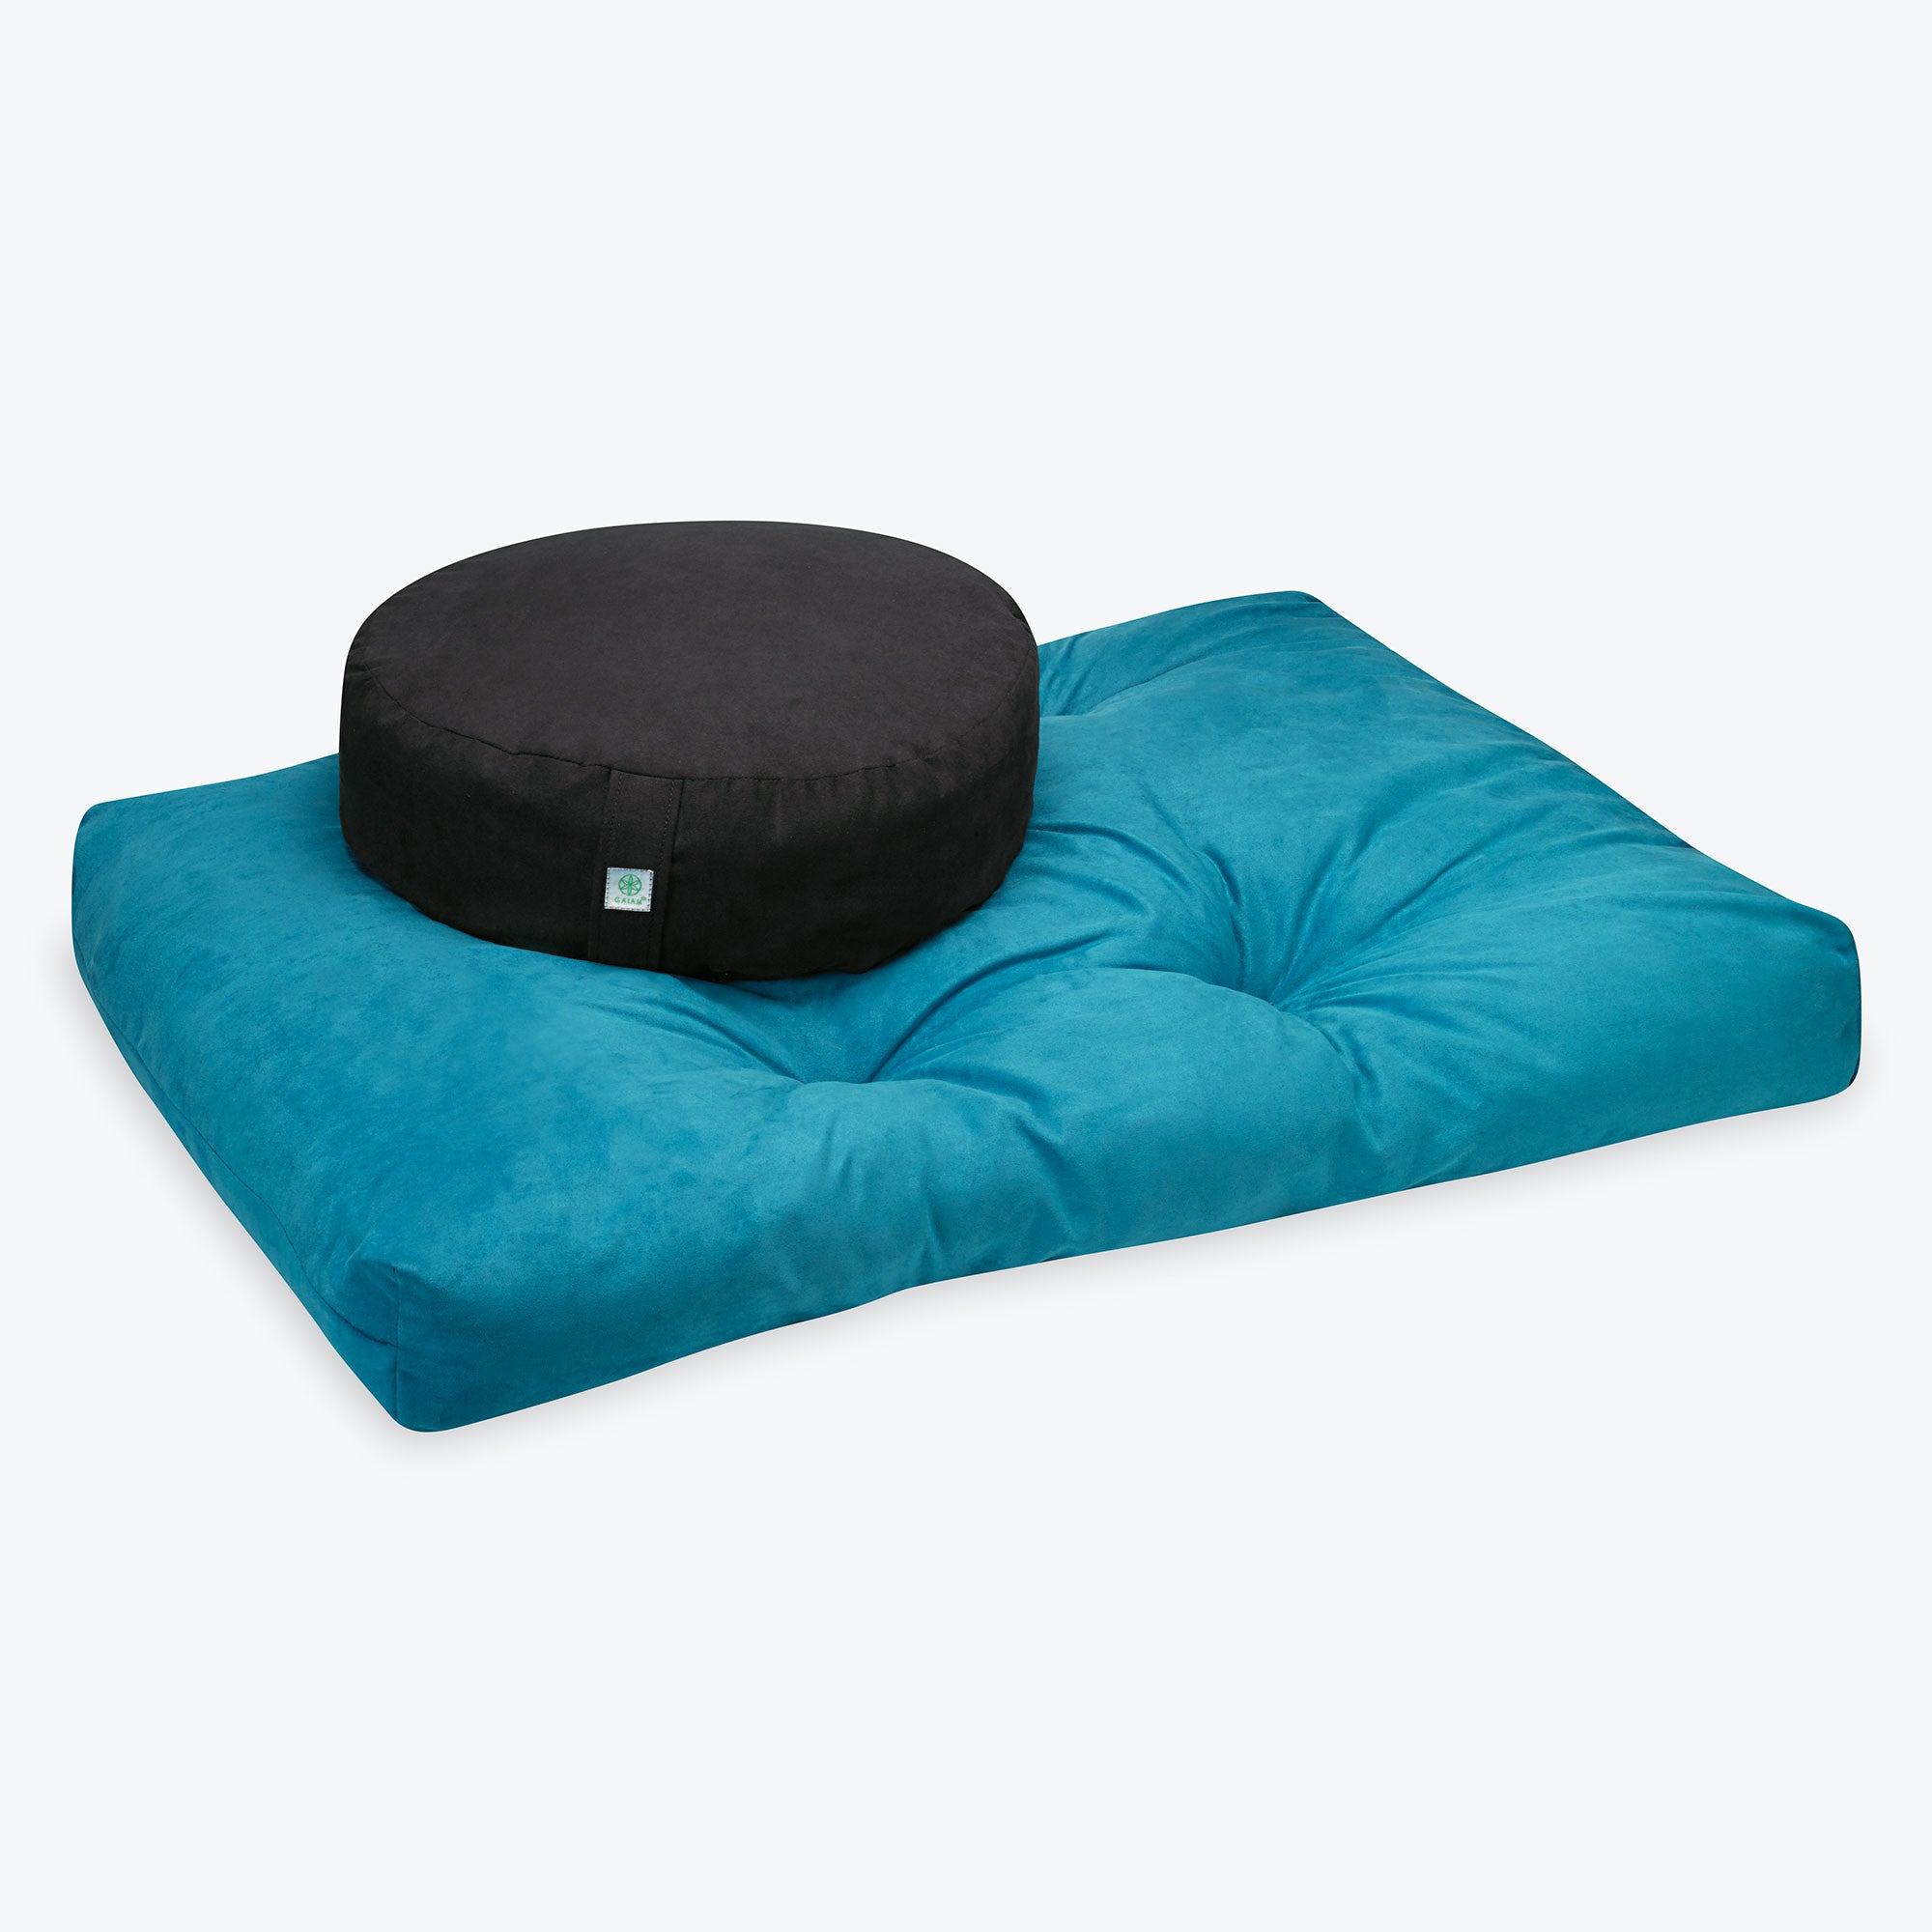 your zafu you things maxresdefault both cotton mountain and zabuton do with mats best meditation round cushion brochure seat pillows we the can yoga since ideas stunning hd